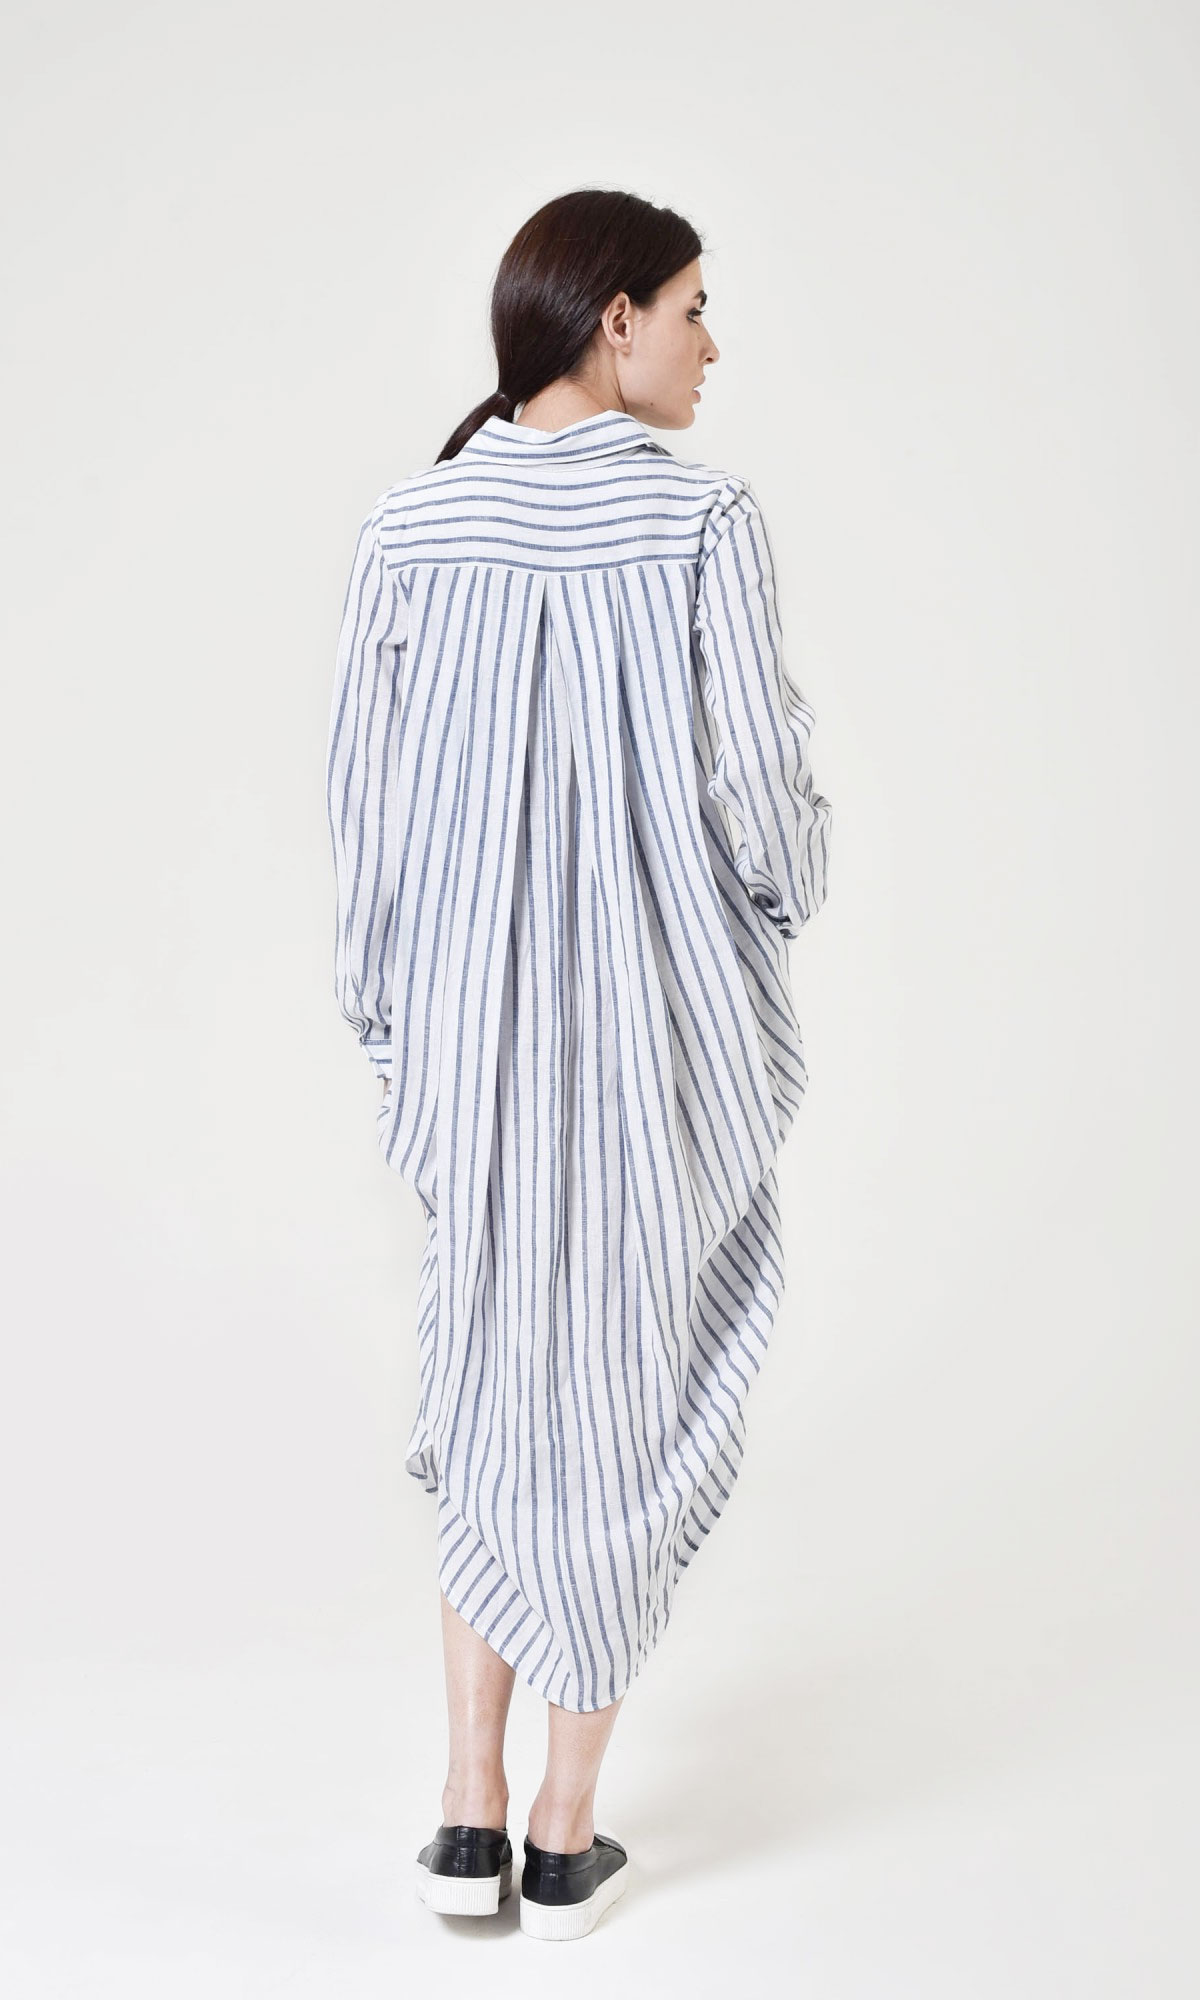 Elegant Stripped Shirt Dress A90276